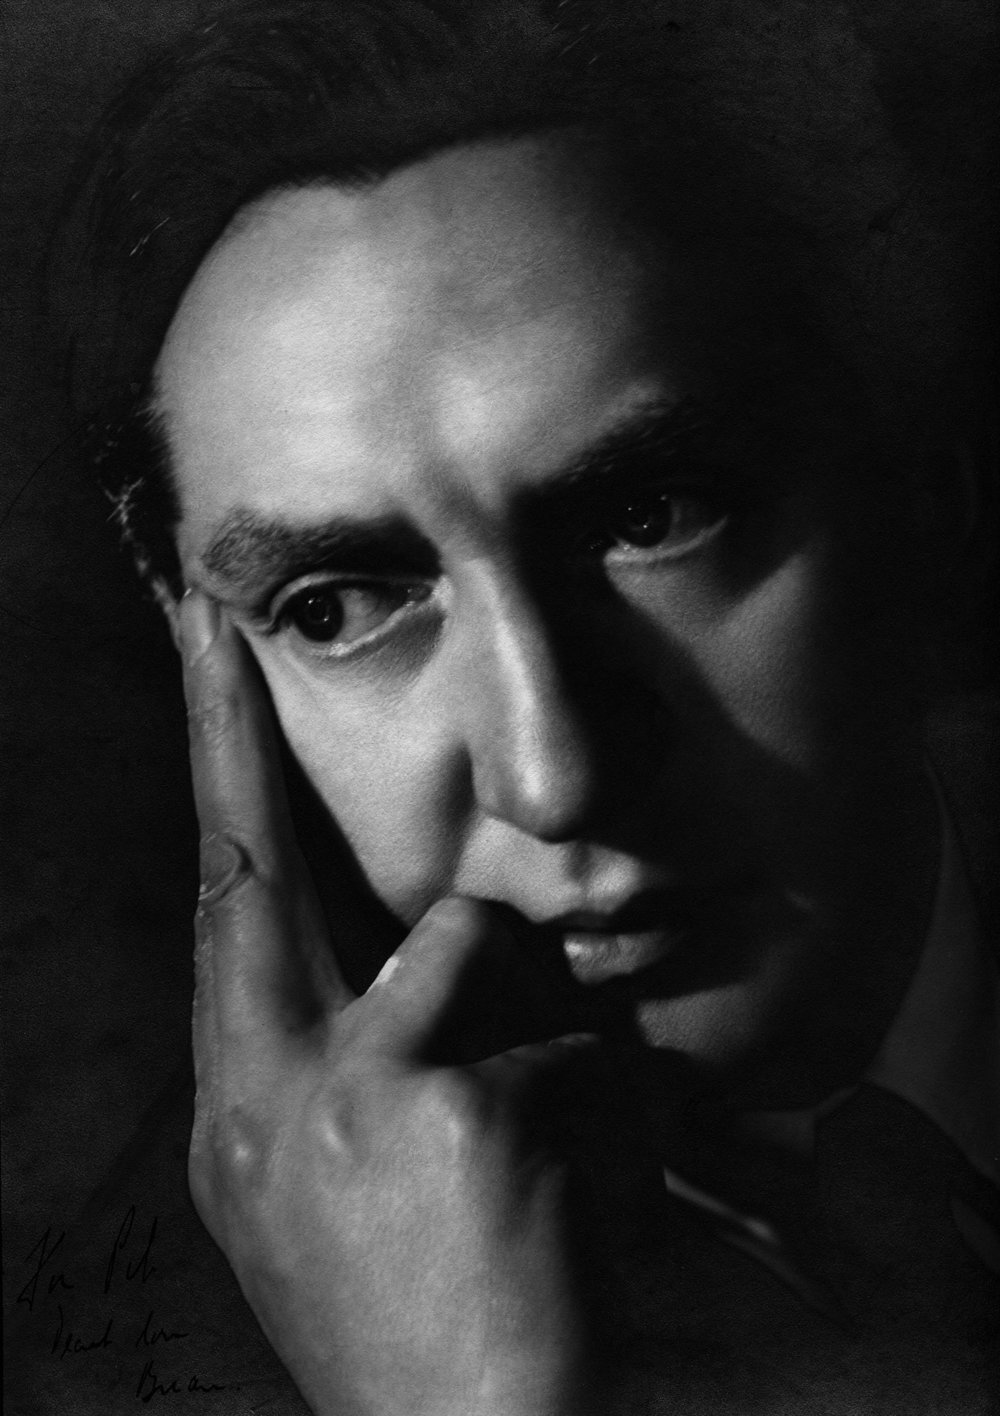 Hurst Photo Portrait. Angus McBean. Copyright Harvard University.